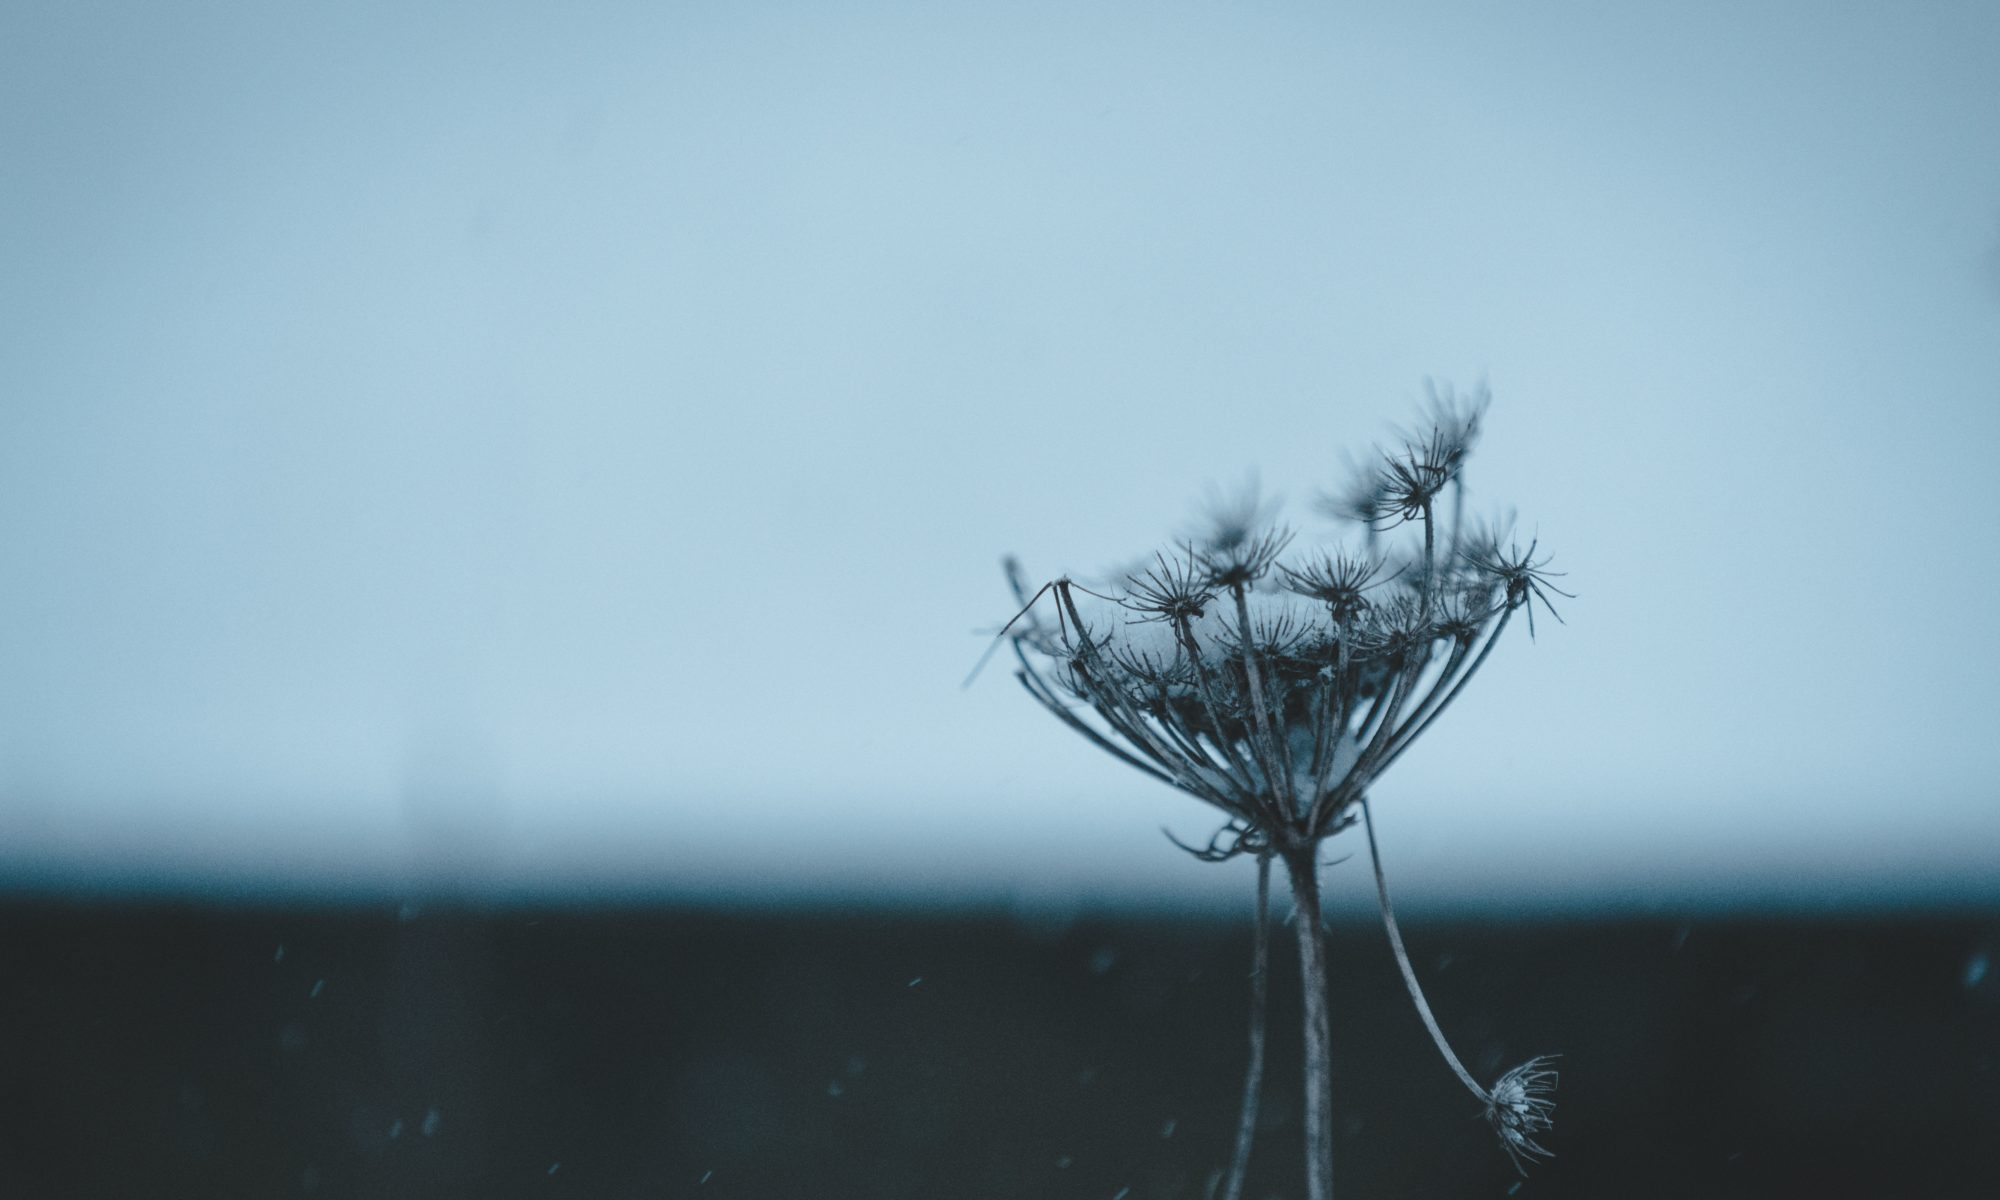 cow parsley looking weather battered to illustrate blog How resilient are you